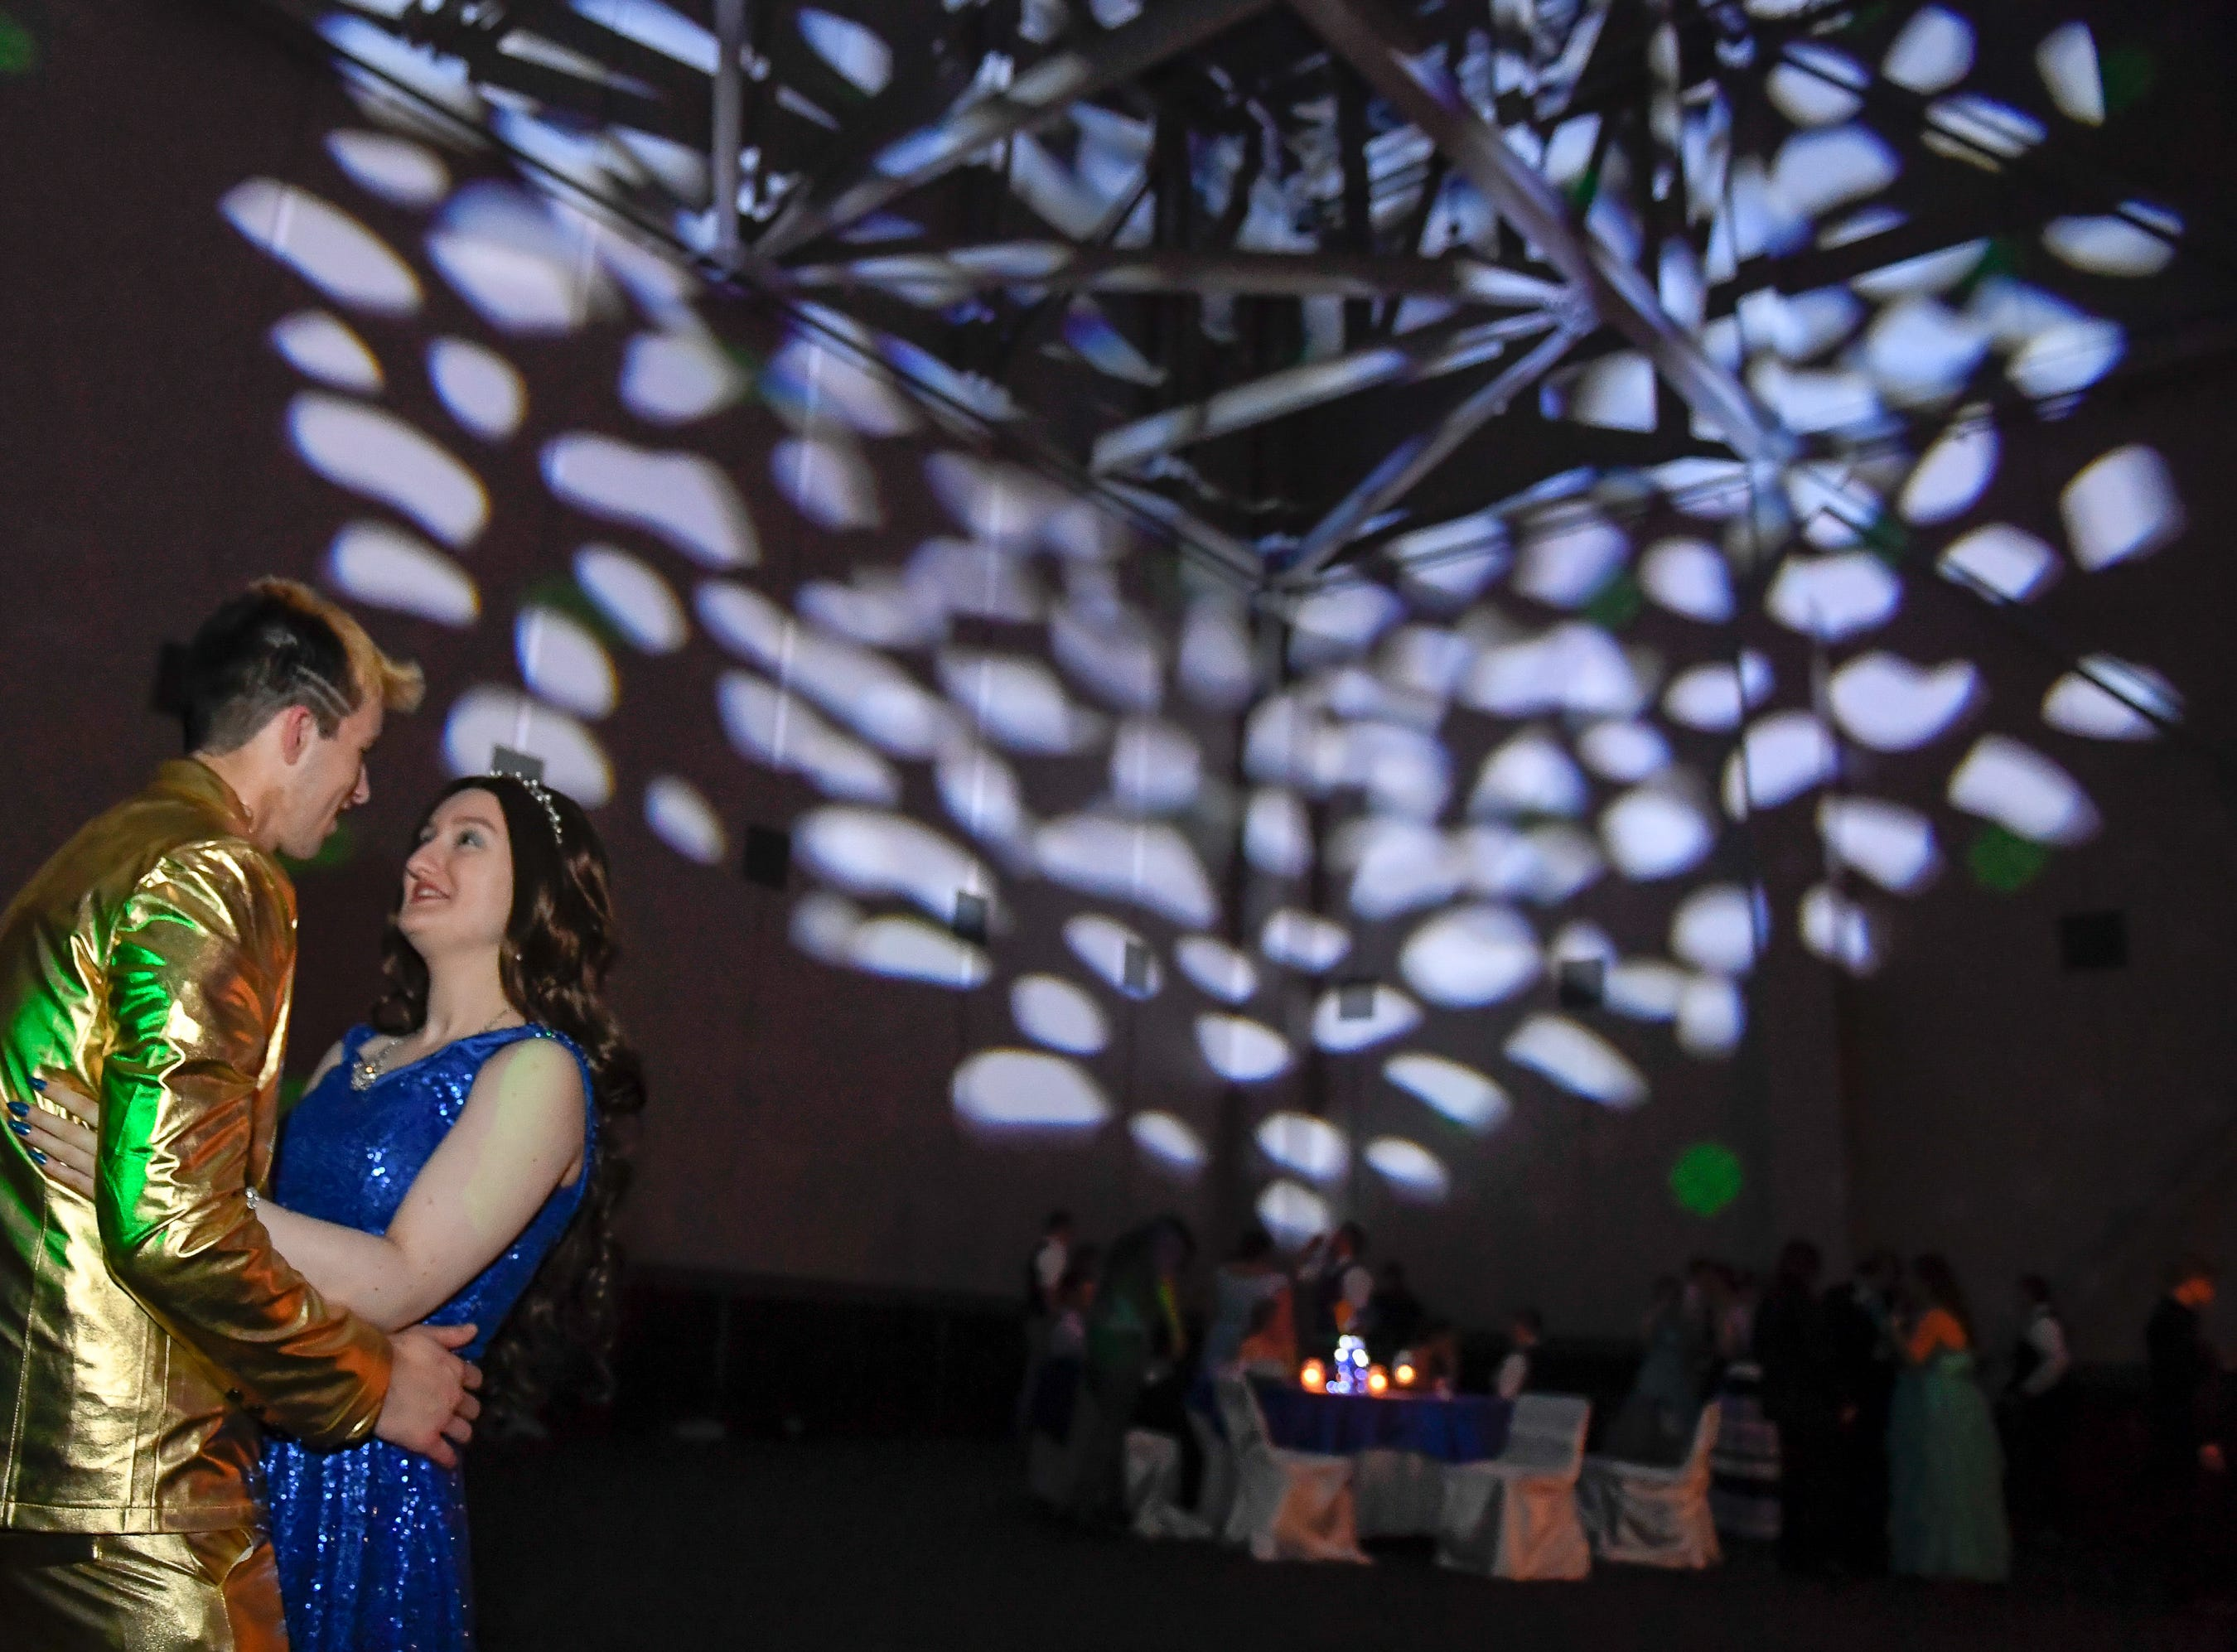 Austin Ryor and Megan McCrea dance at the Boonville High School prom, held at the Old National Events Center Plaza Saturday, April 27, 2019.